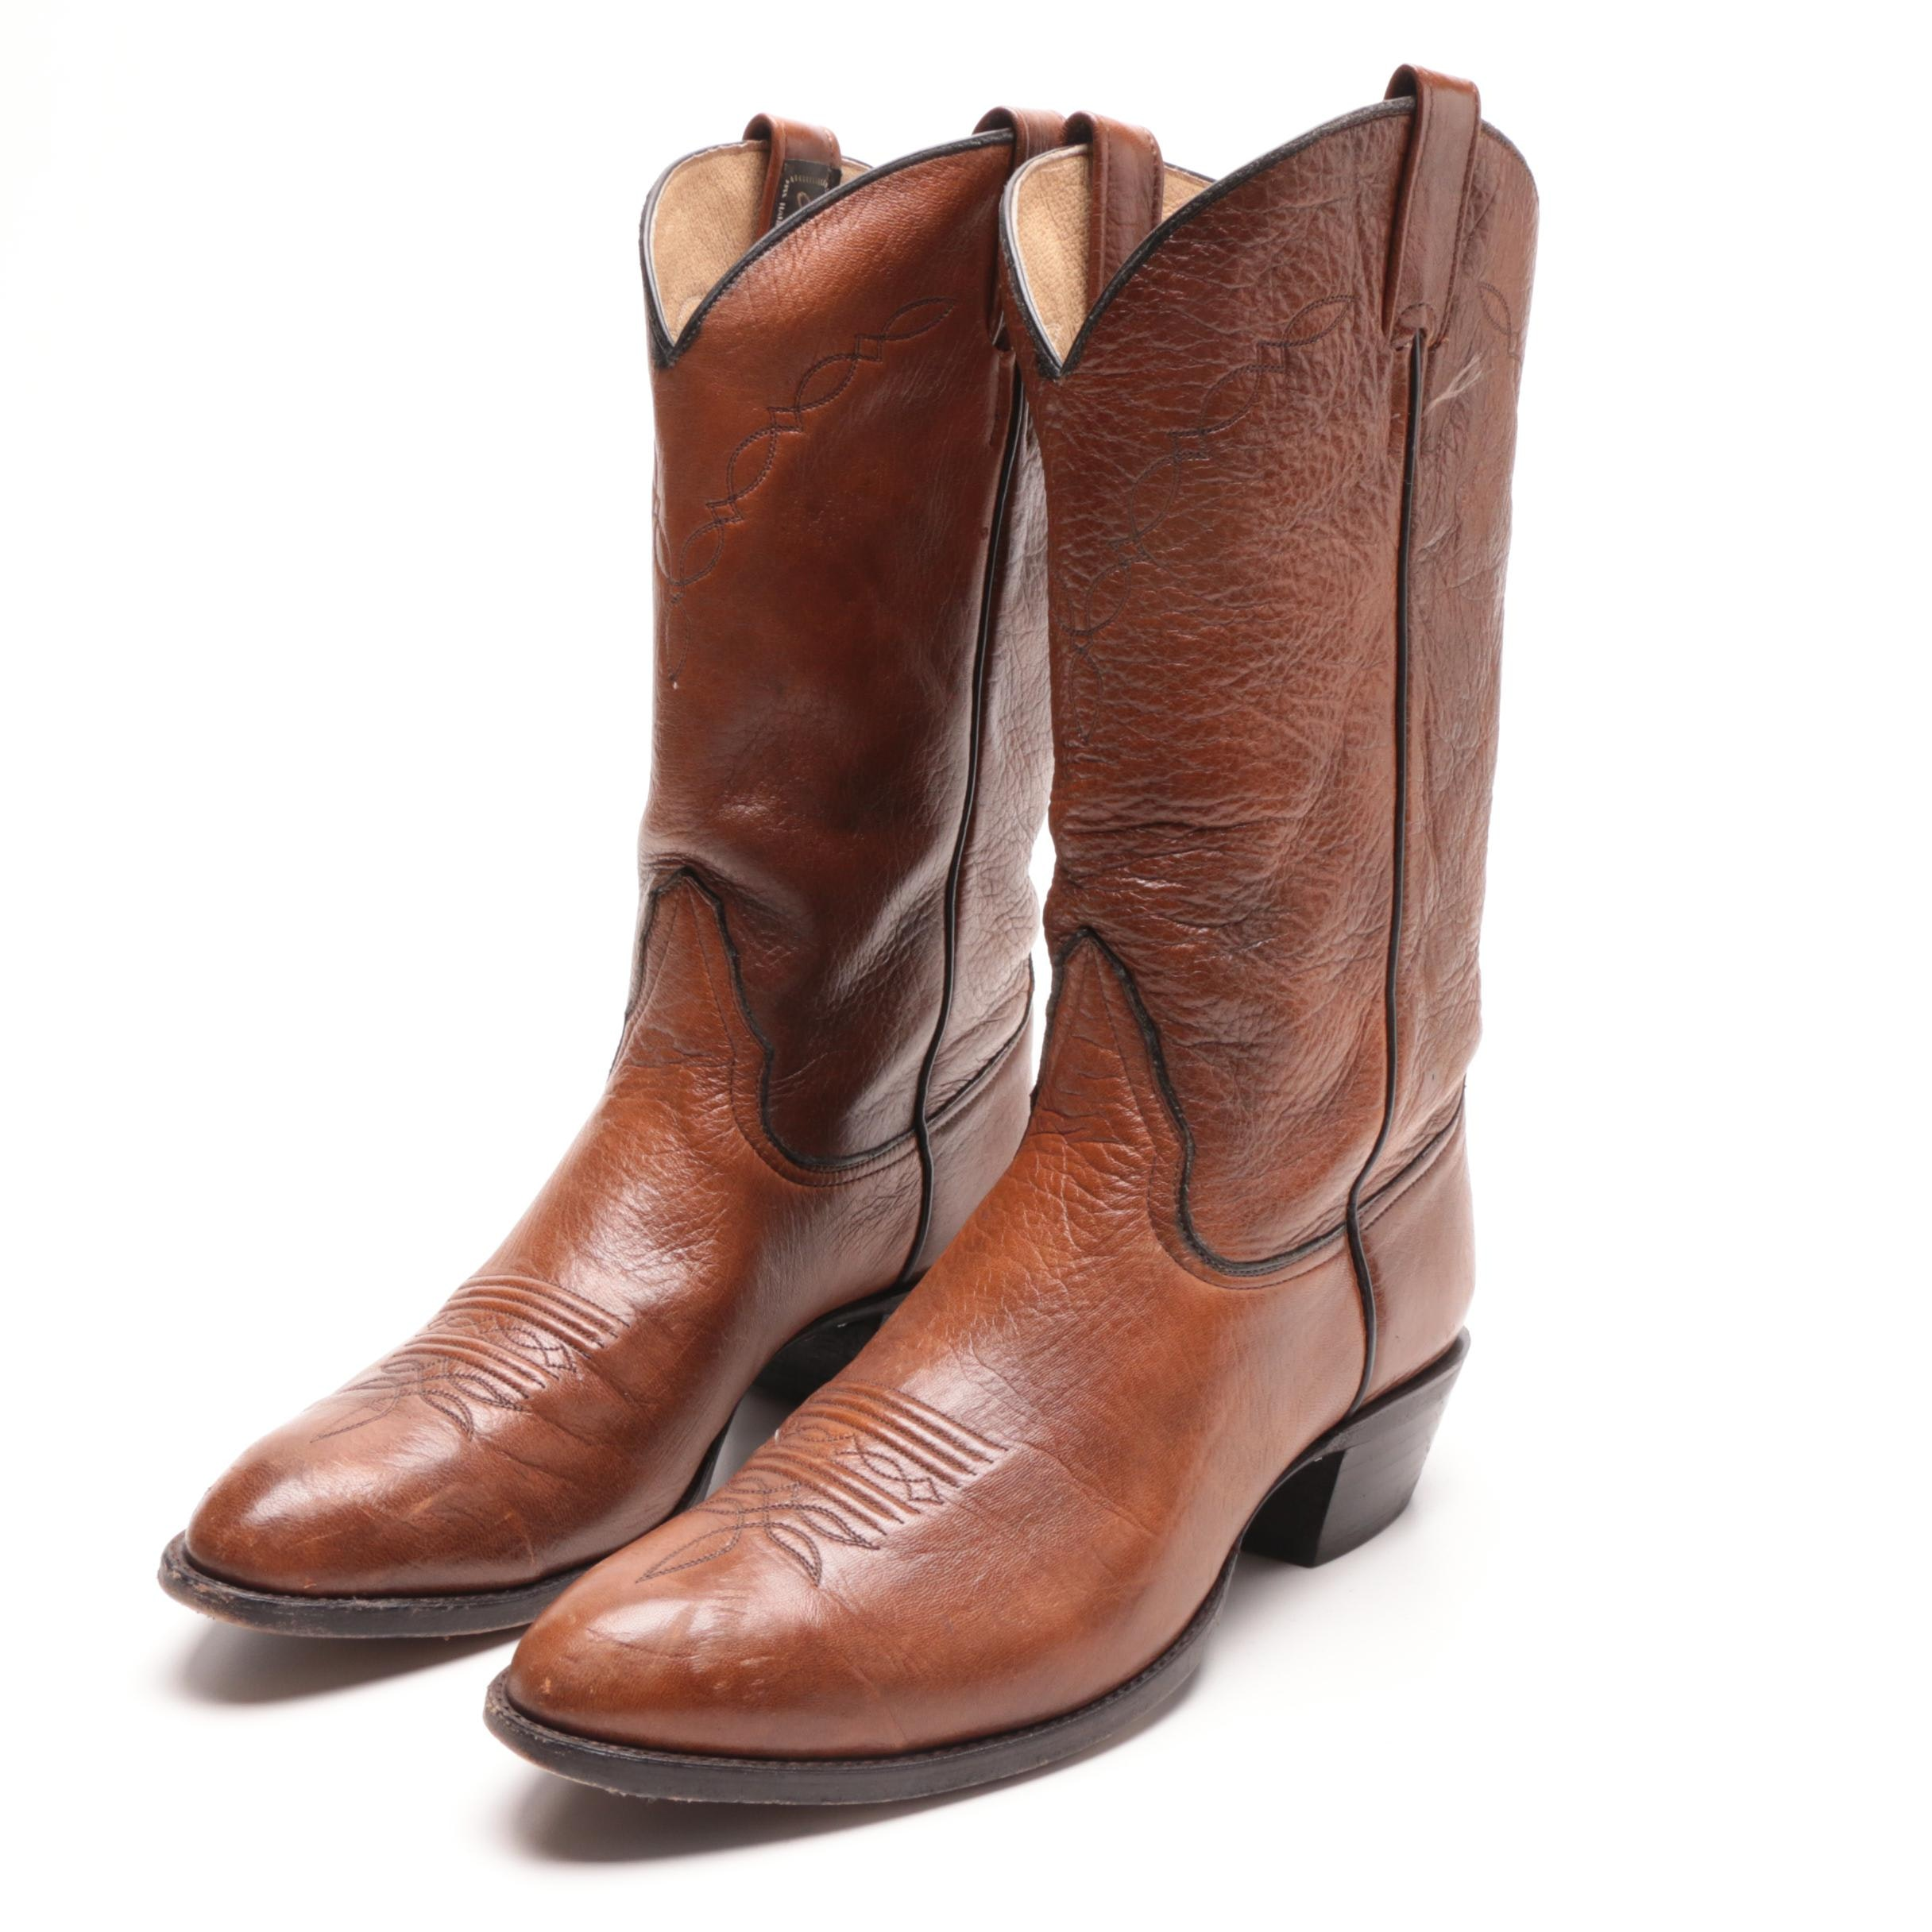 Men's Larry Mahan of El Paso, Texas Hand Crafted Brown Leather Cowboy Boots